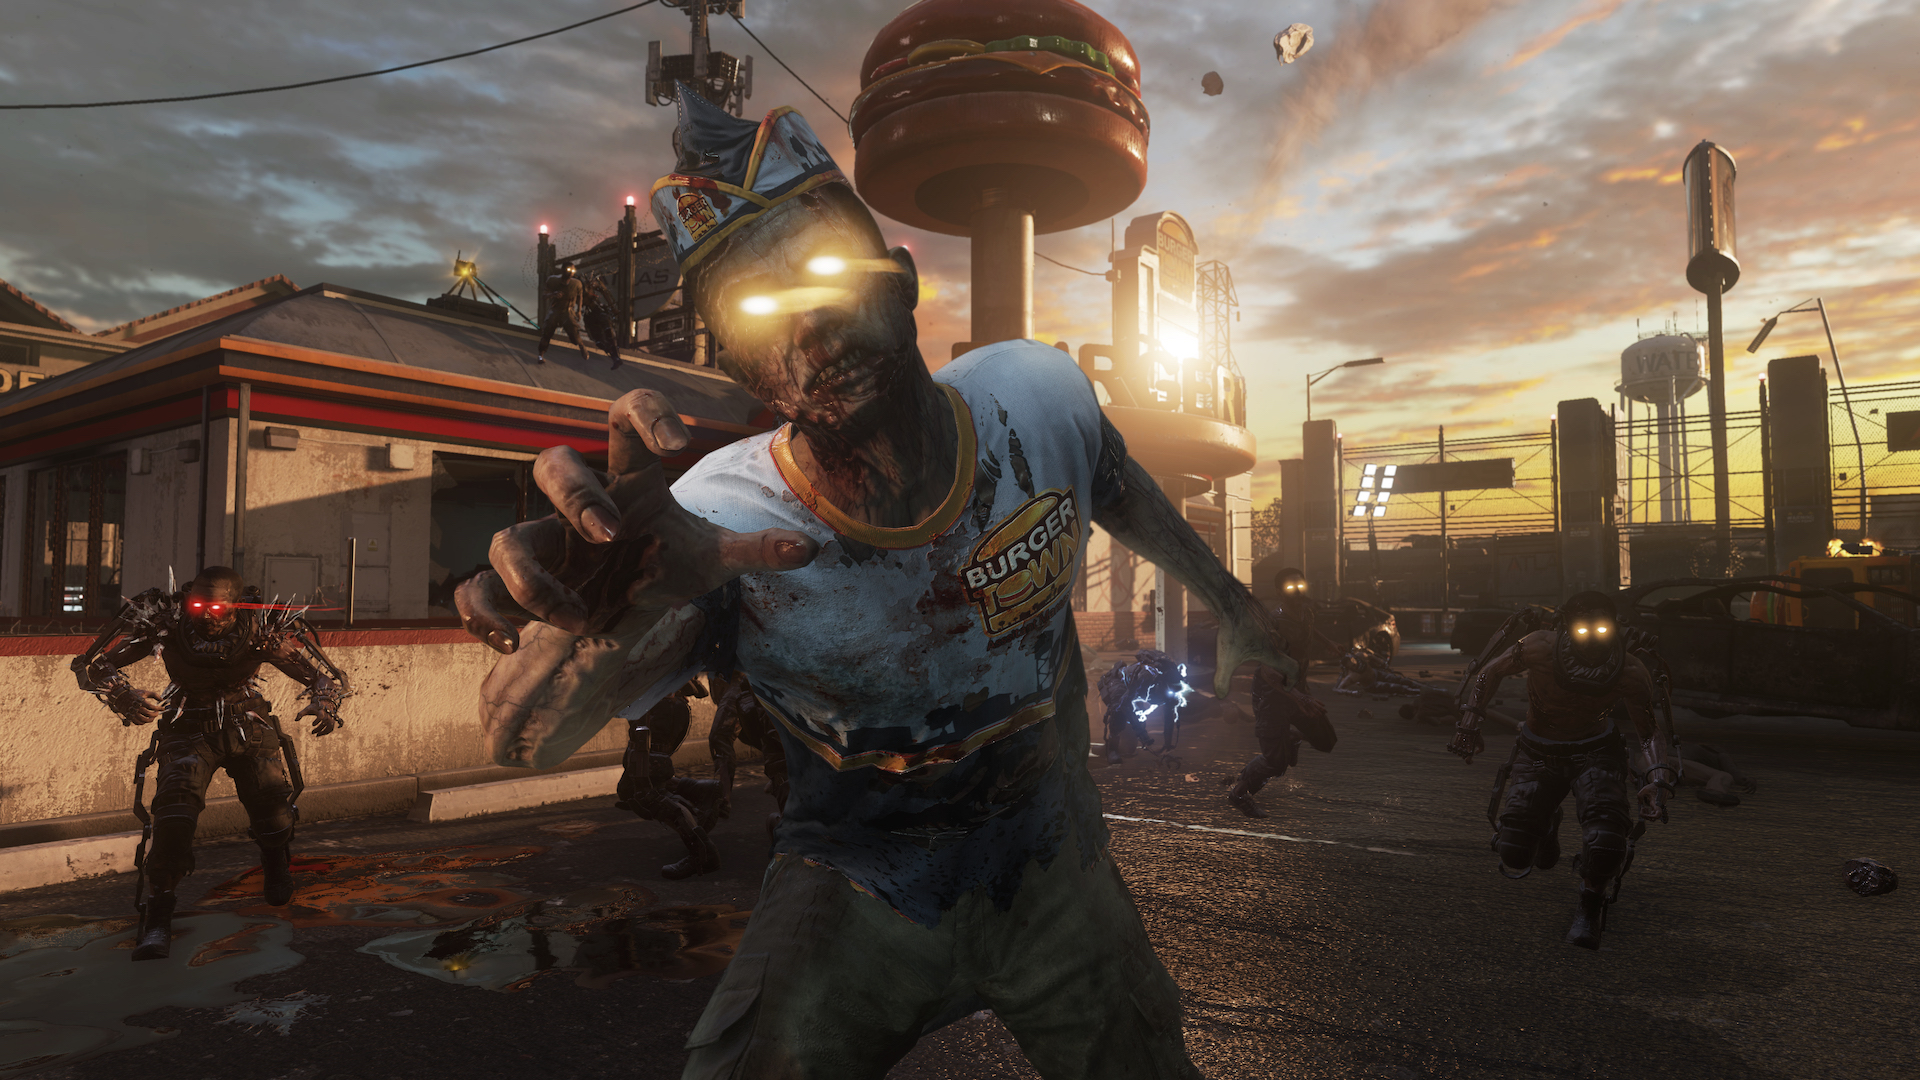 Image Exo Zombies Infection Screenshot AWjpg Call Of Duty - Call duty exo zombies trailer looks epic